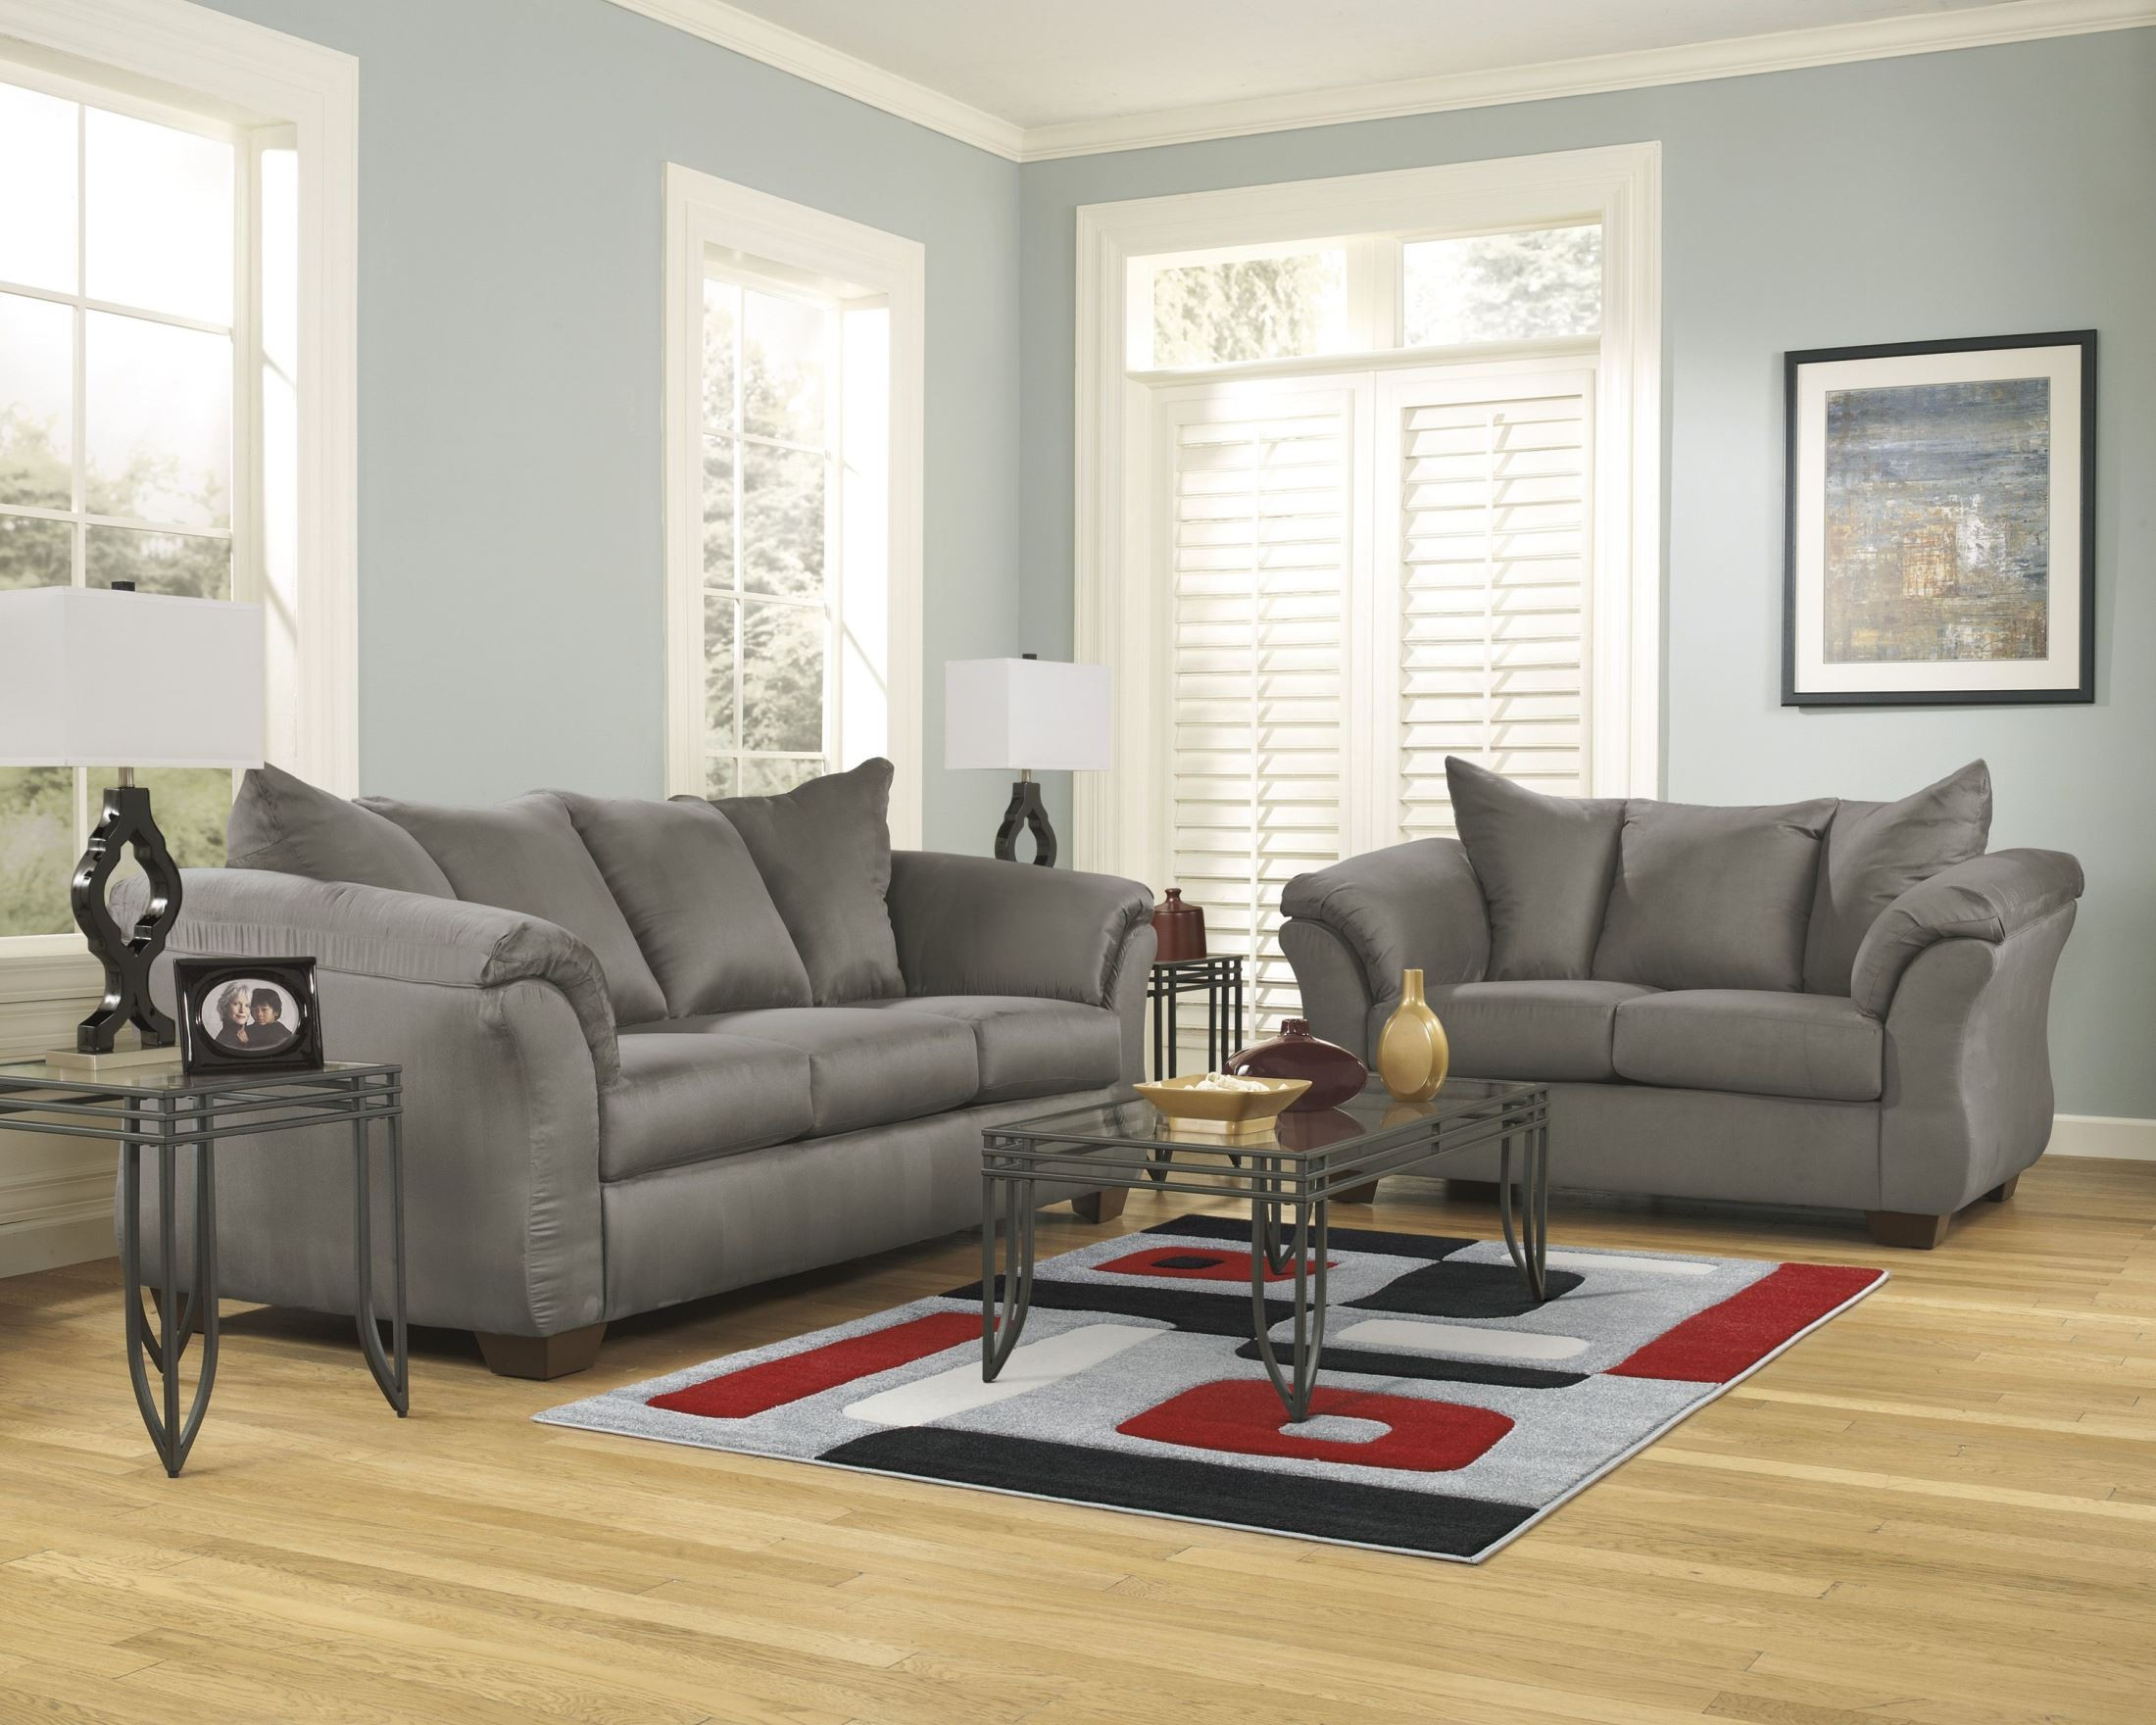 Darcy cobblestone chaise sectional 7500518 ashley furniture for 750 sofa chaise